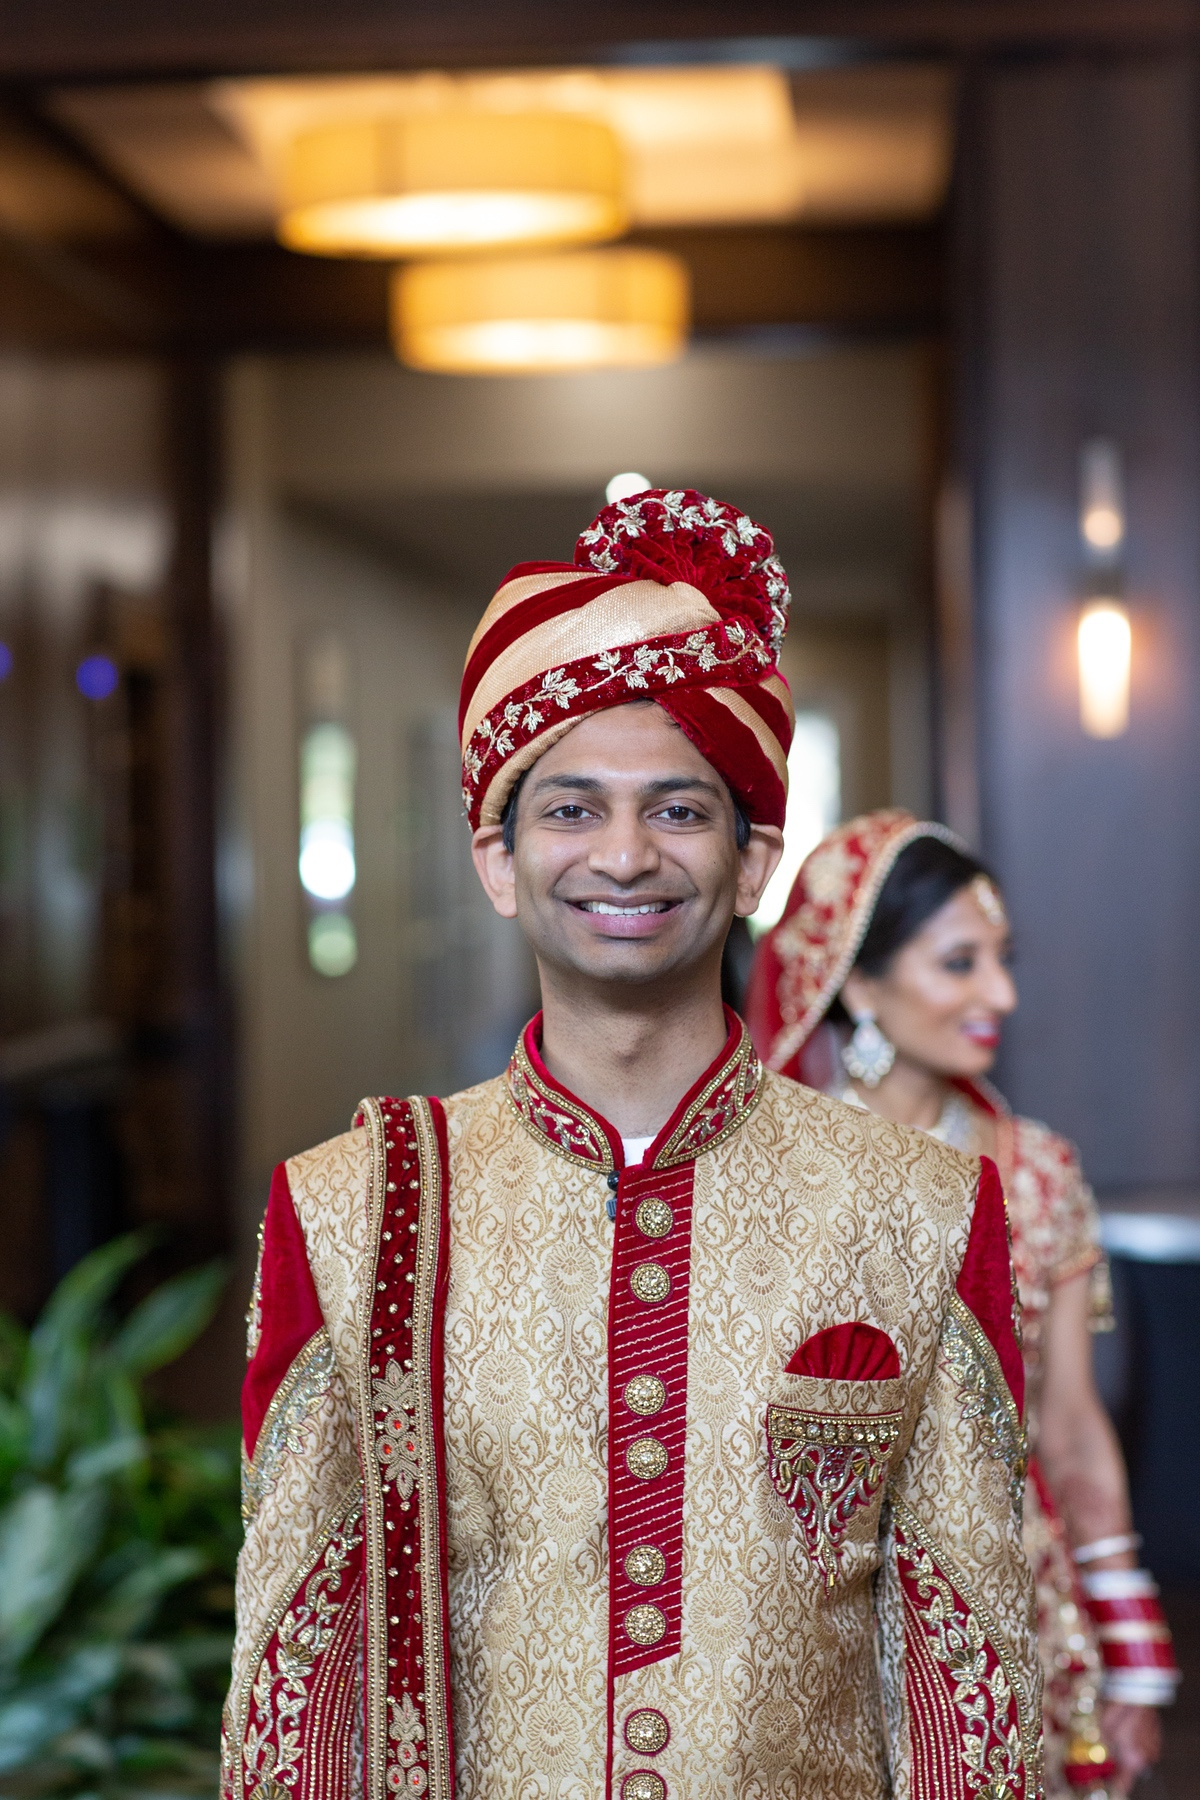 Le Cape Weddings - South Asian Wedding - Chicago Wedding Photographer P&V-34.jpg